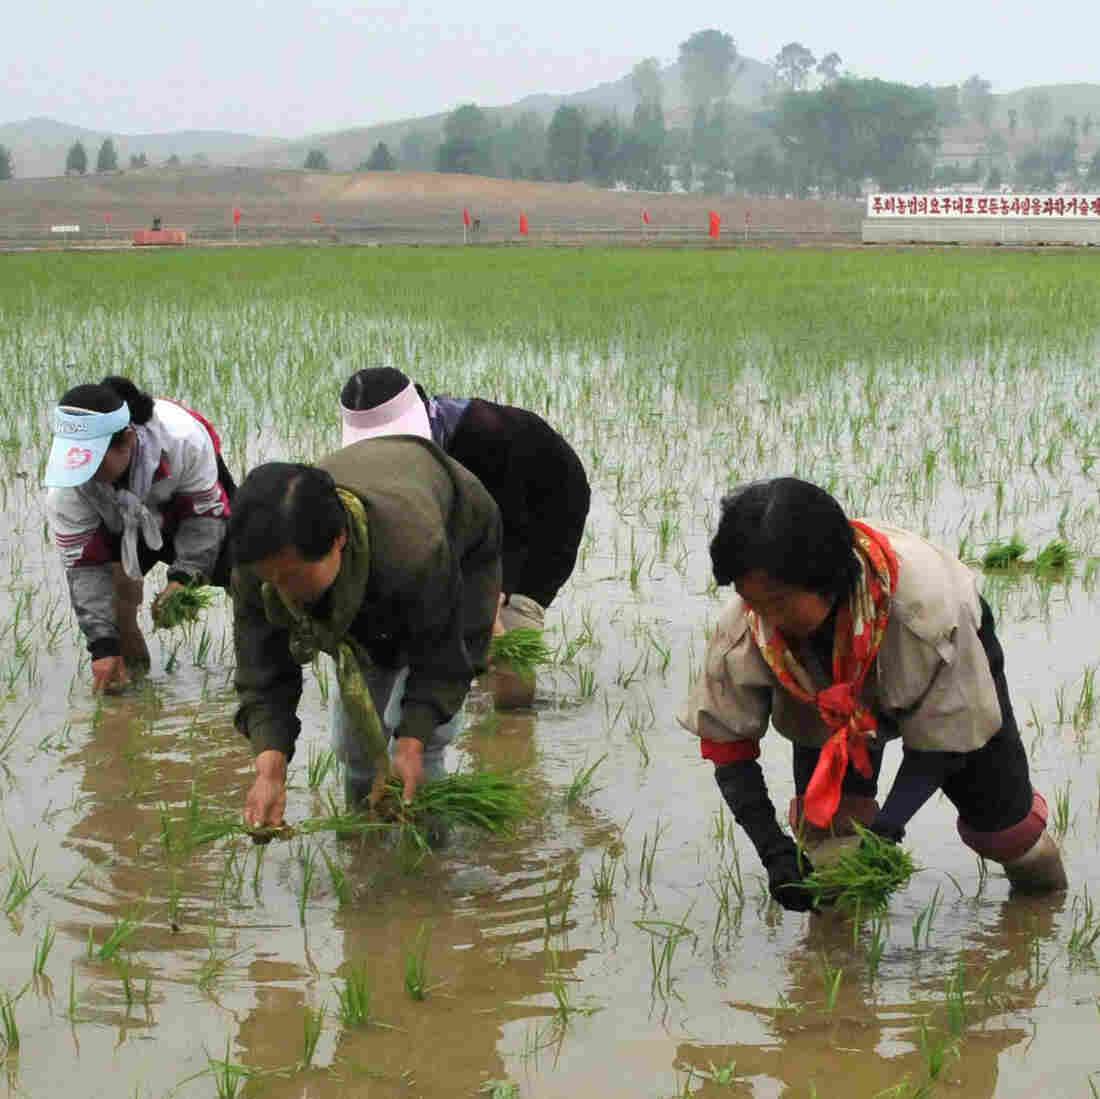 Workers plant rice at a co-op farm in Nampo, North Korea, on May 12. The North Korean leadership has given indications that it may be preparing to implement measures to liberalize the country's economy.